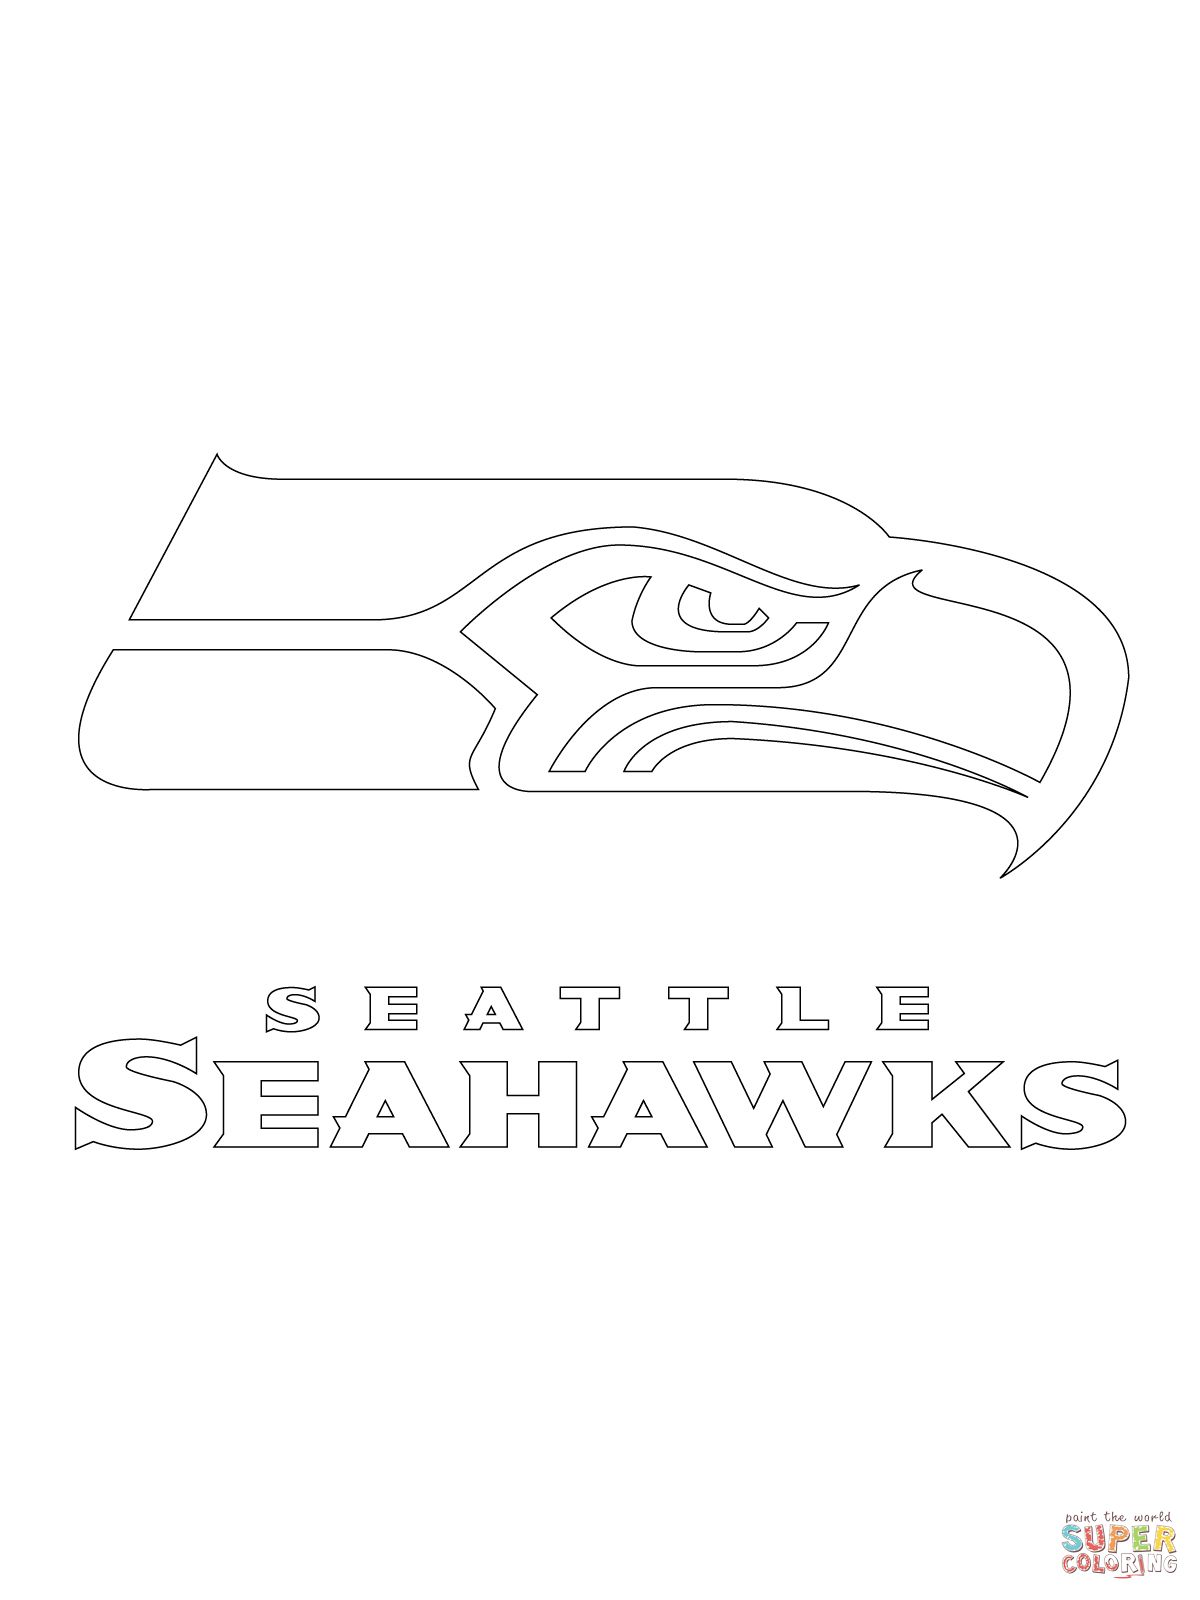 Seattle Seahawks Logo Coloring Page Supercoloring Com Seattle Seahawks Seattle Seahawks Logo Football Coloring Pages